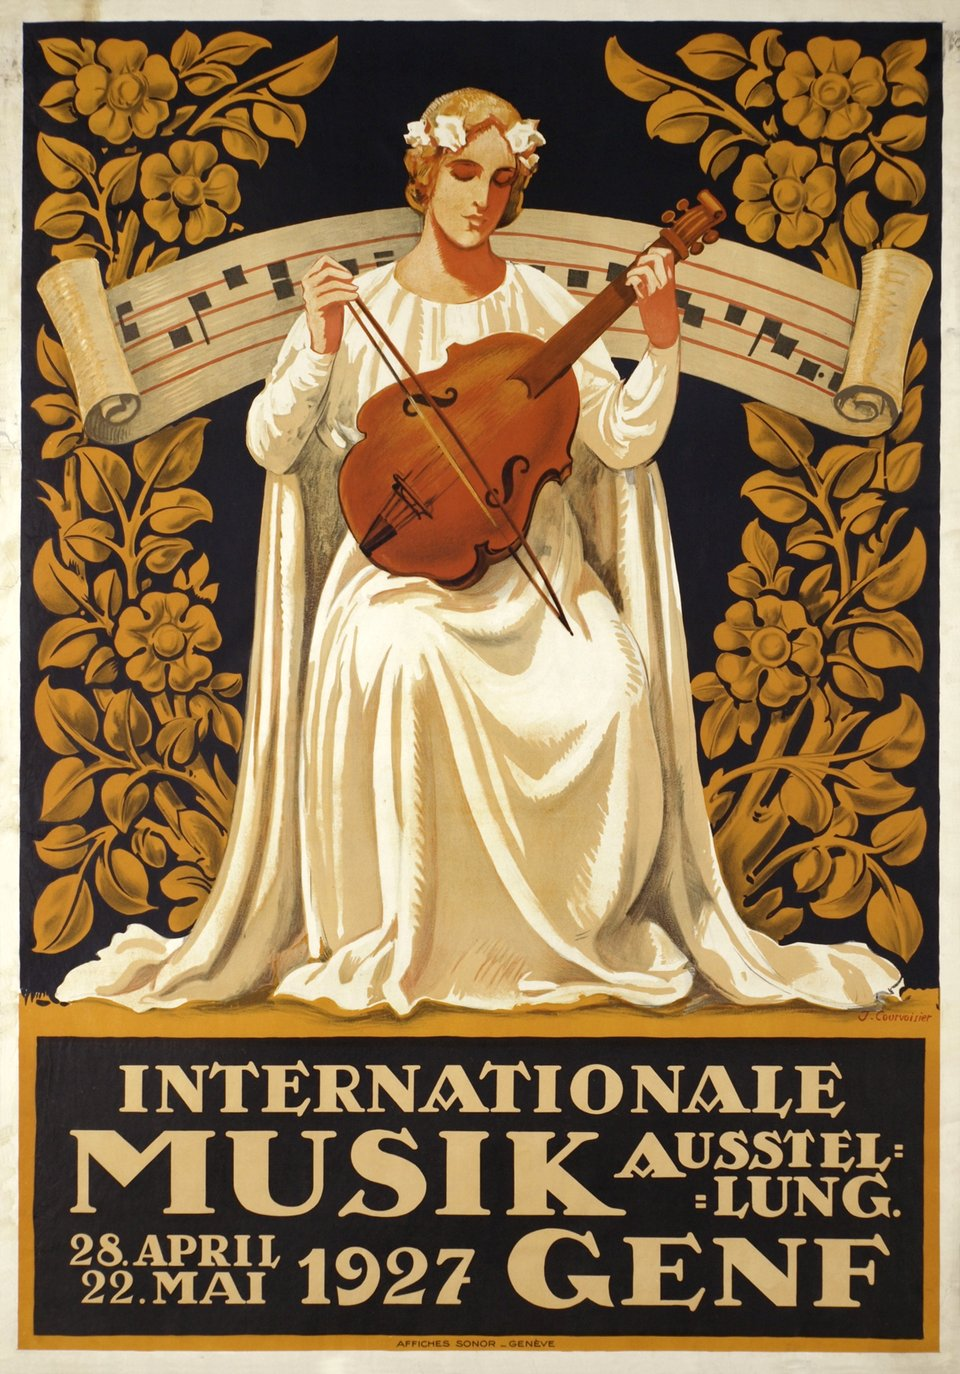 Internationale Musik Ausstellung 1927 Genf – Affiche ancienne – Jules COURVOISIER – 1927